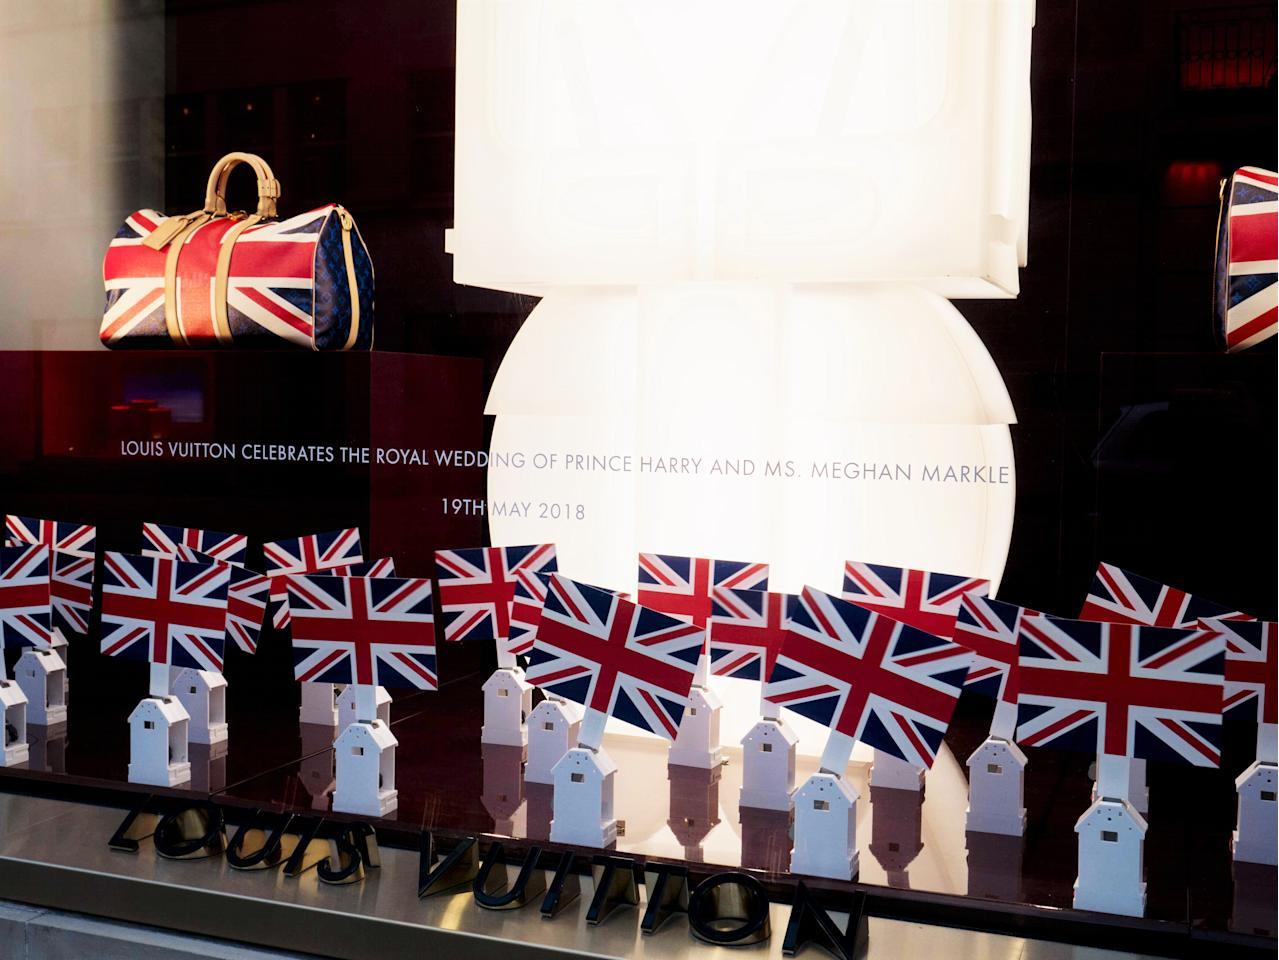 <p></p><p>Louis Vuitton has launched a limited-edition collection of bags in celebration of Prince Harry and Meghan Markle's wedding which are now available to shop from London's flagship store. </p><p></p>